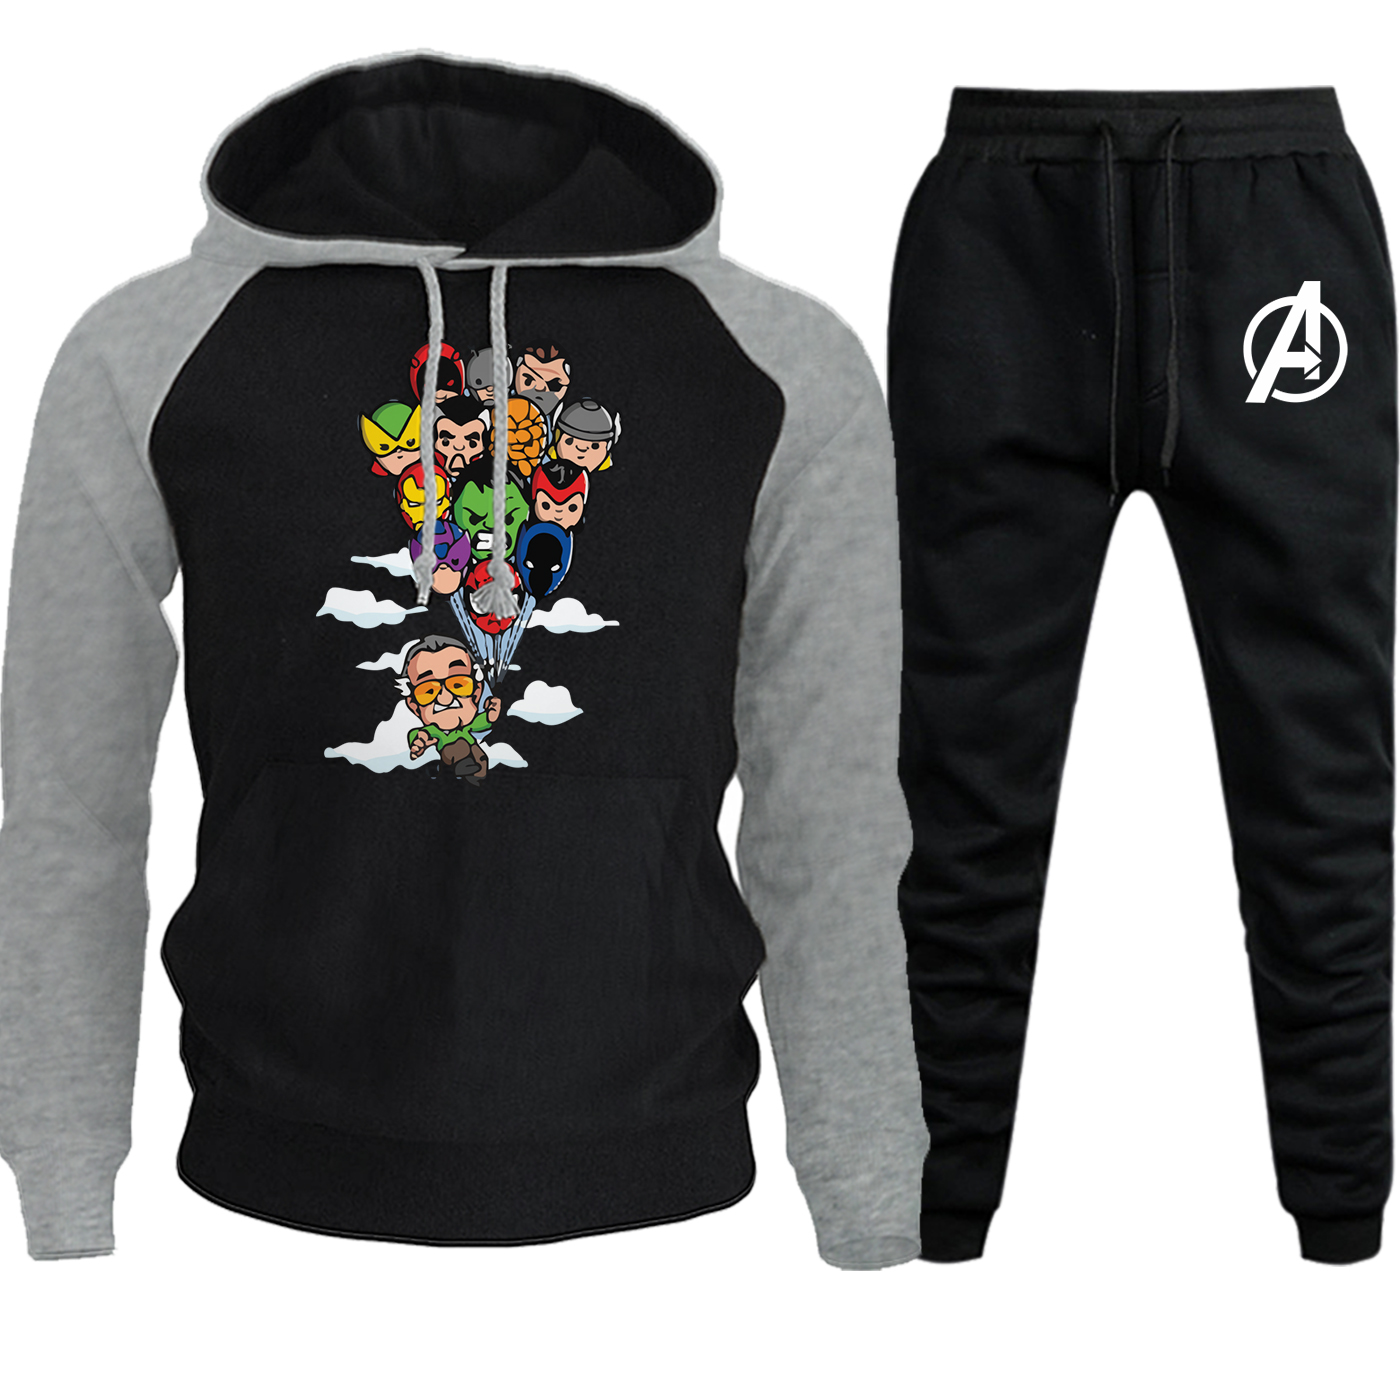 The Avengers Autumn Winter 2019 Streetwear Mens Hoodies Raglan Marvel Print Casual Pullover Suit Male Hooded+Pants 2 Piece Set